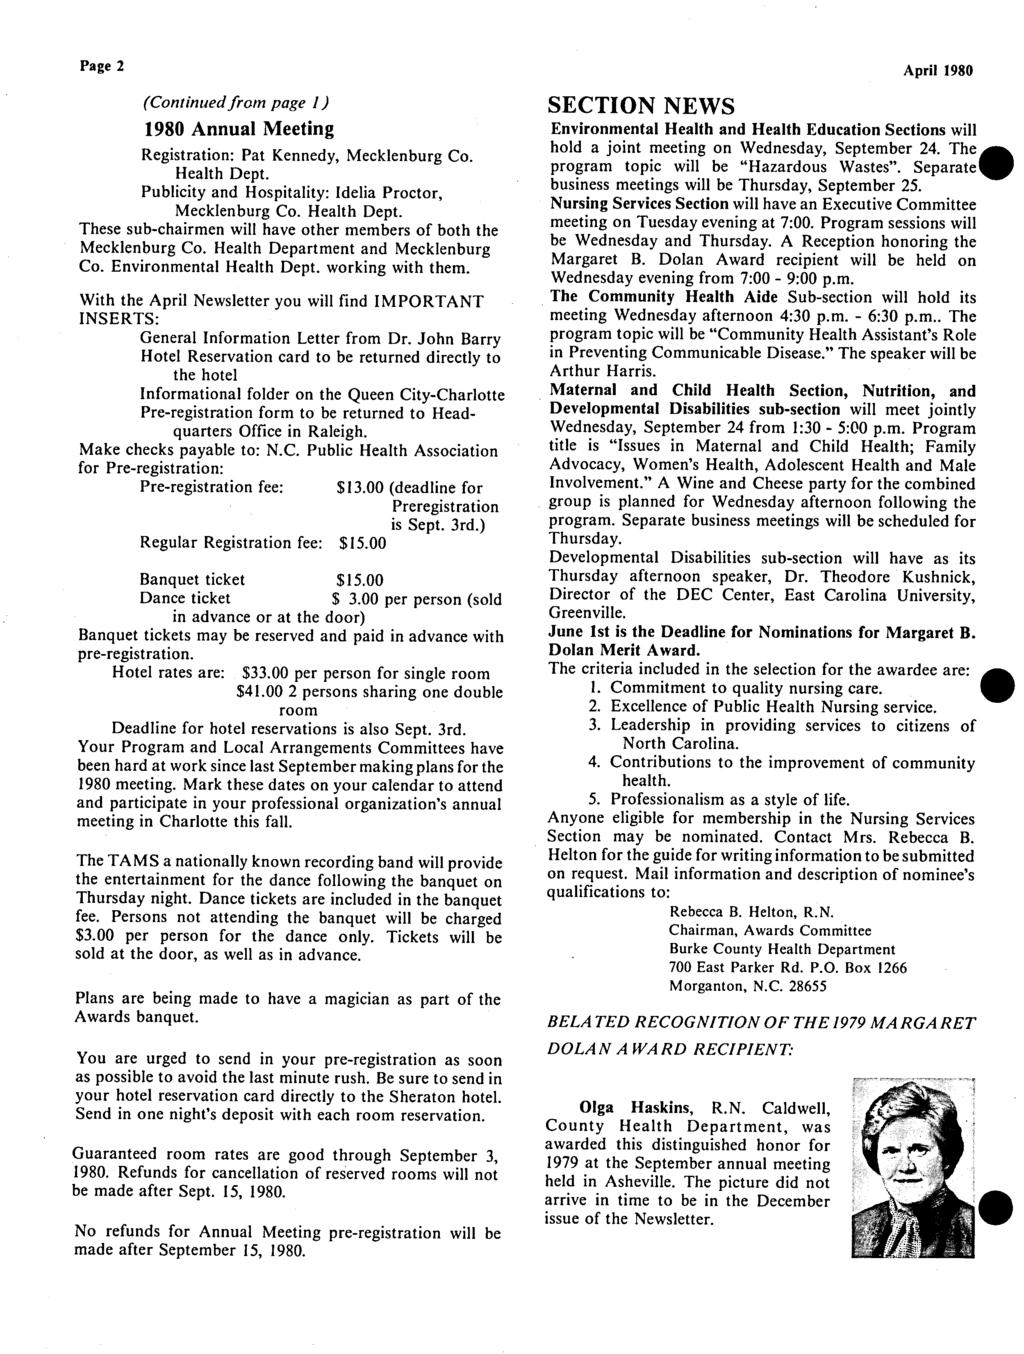 Page 2 Continuedfrom page 1) 1980 Annual Meeting Registration: Pat Kennedy, Mecklenburg Co. Health Dept. Publicity and Hospitality: Idelia Proctor, Mecklenburg Co. Health Dept. These sub -chairmen will have other members of both the Mecklenburg Co.